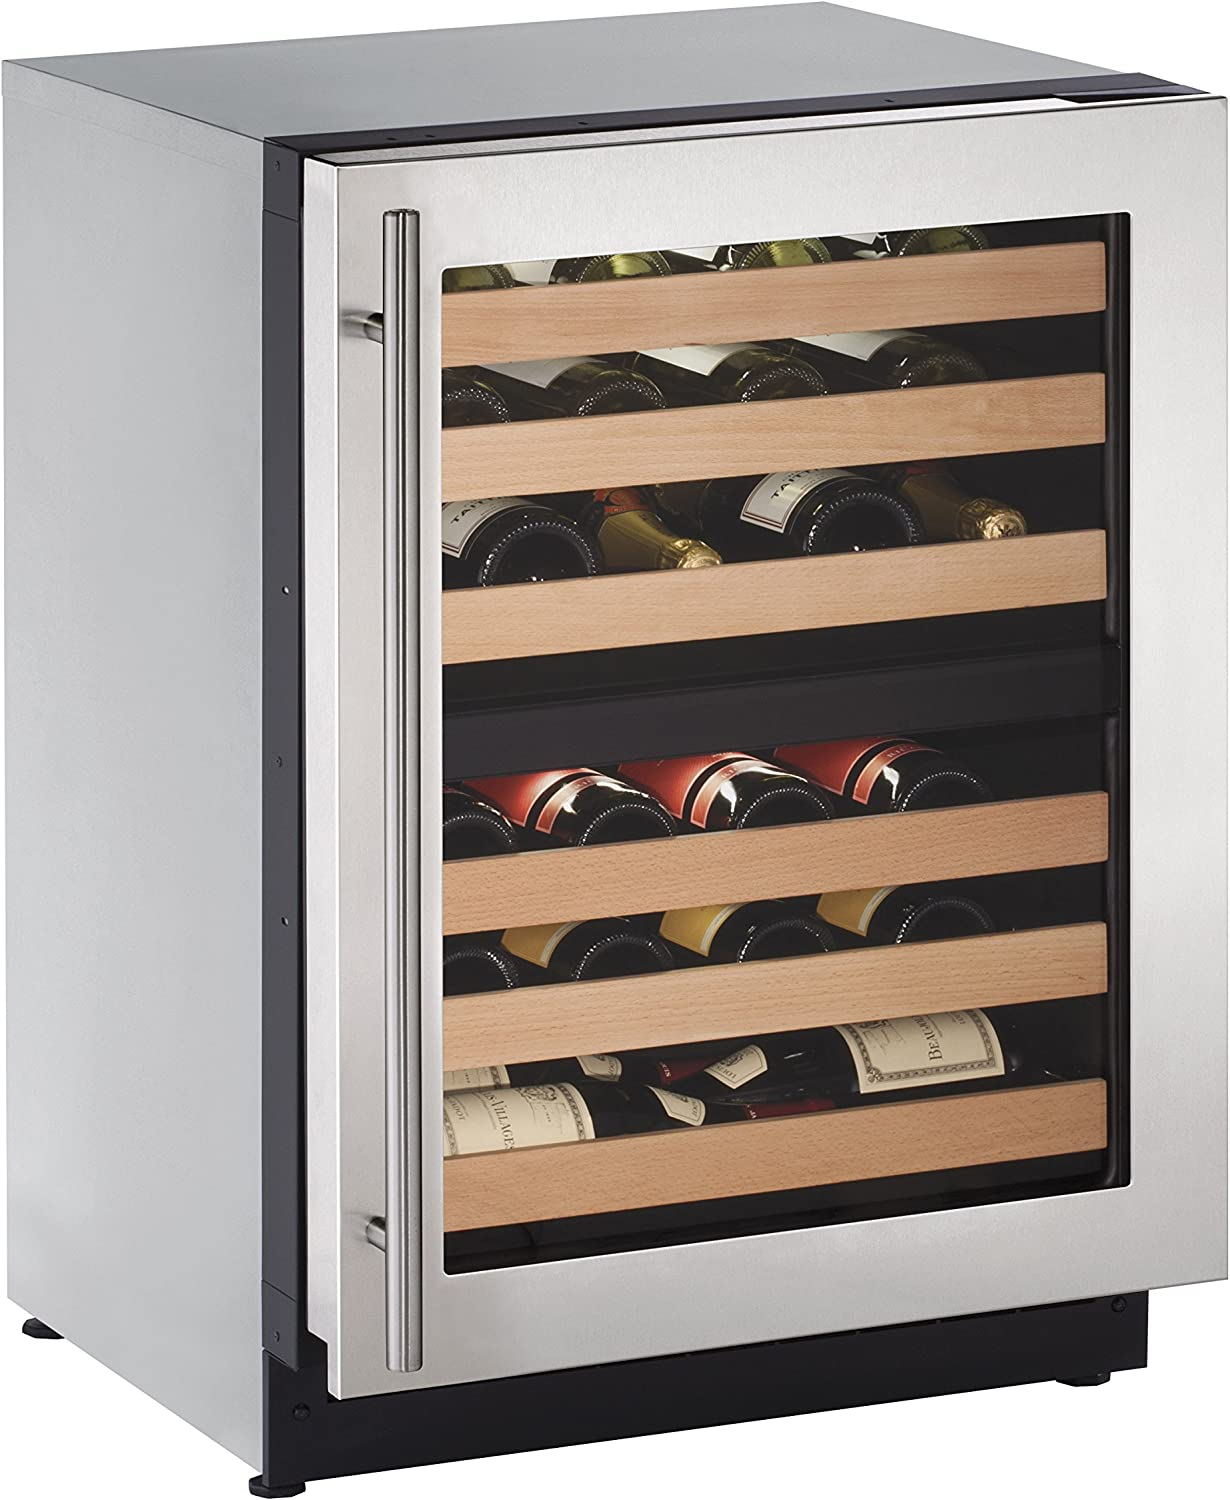 U-Line U2224ZWCS00A Gifts free shipping Built-in Wine 24